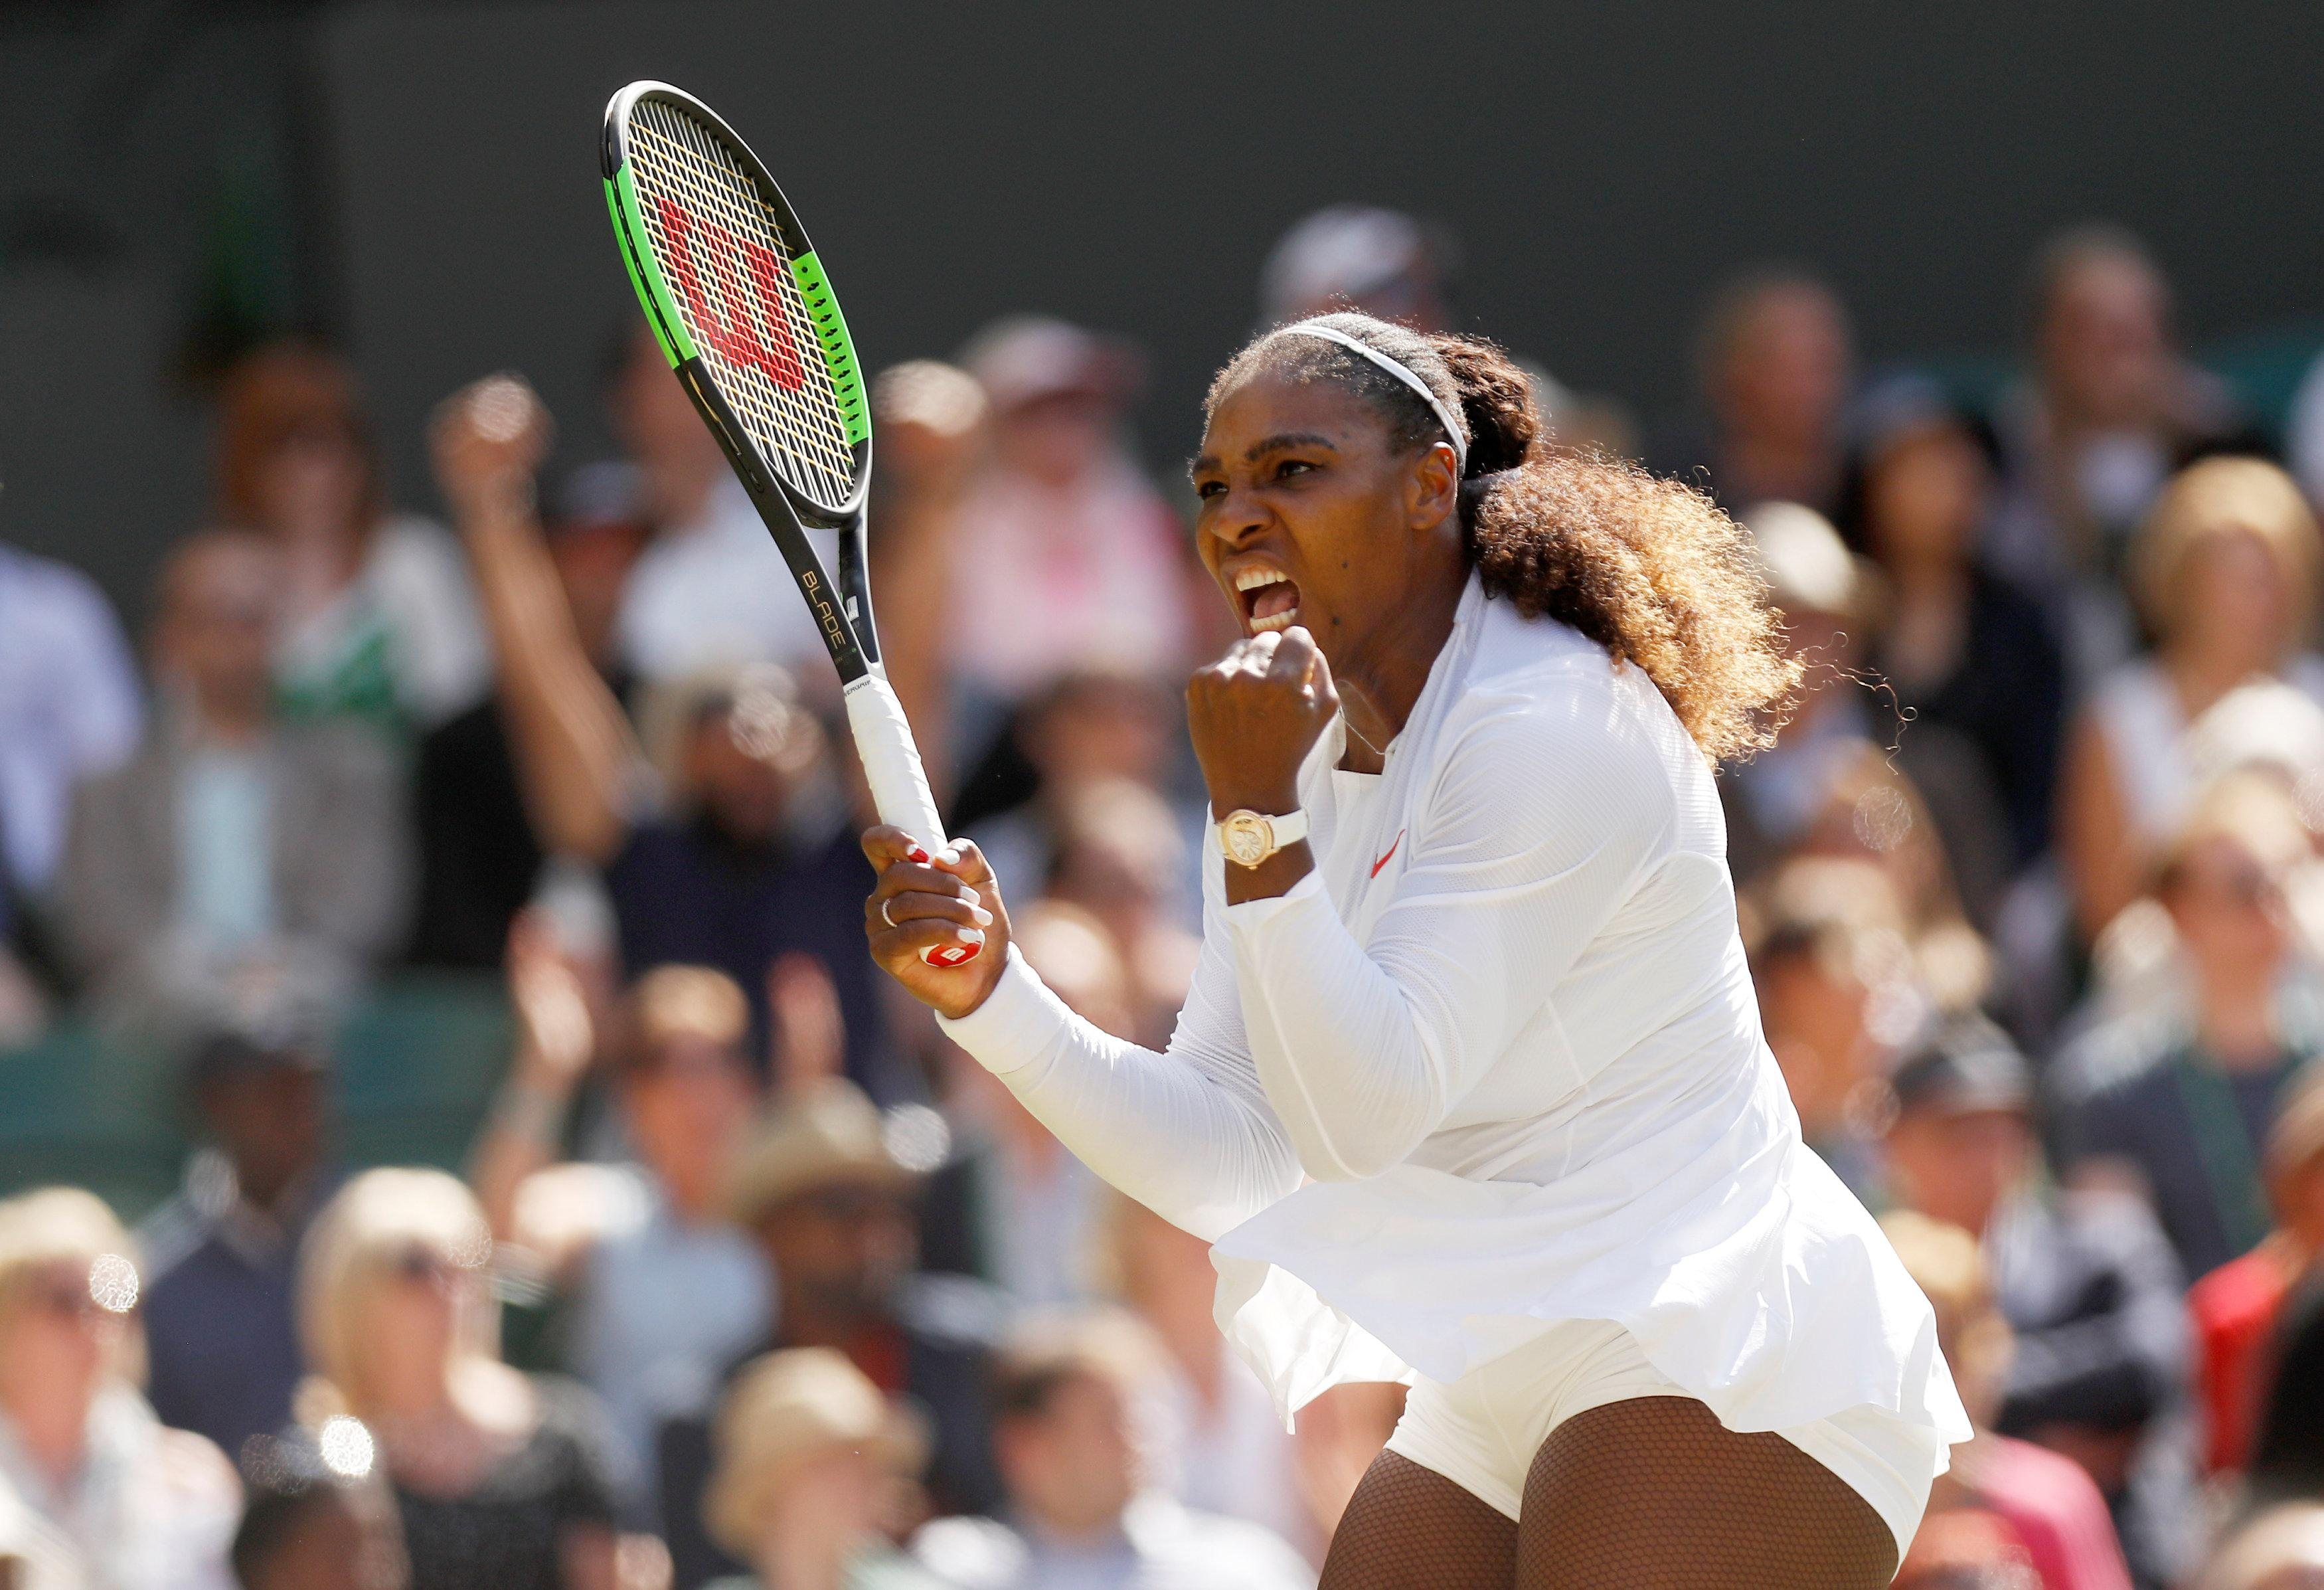 Serena Williams was made to fight as she came back from a set down to beat Camila Giorgi to reach the semi-finals